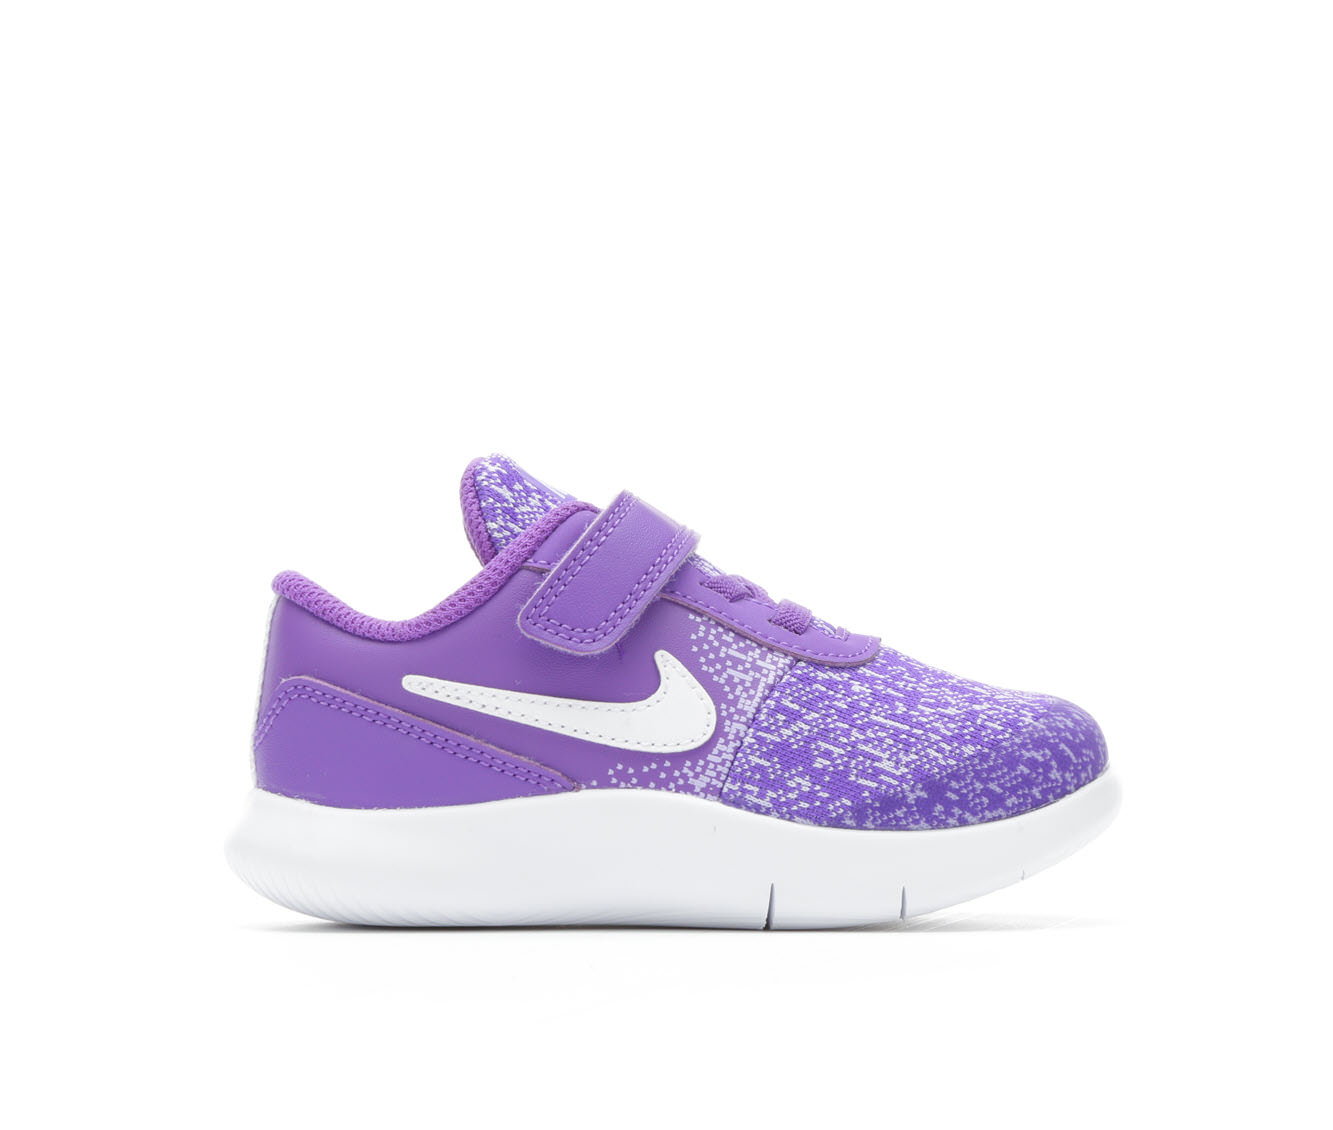 Girls' Nike Infant Flex Contact Velcro Running Shoes (Purple)